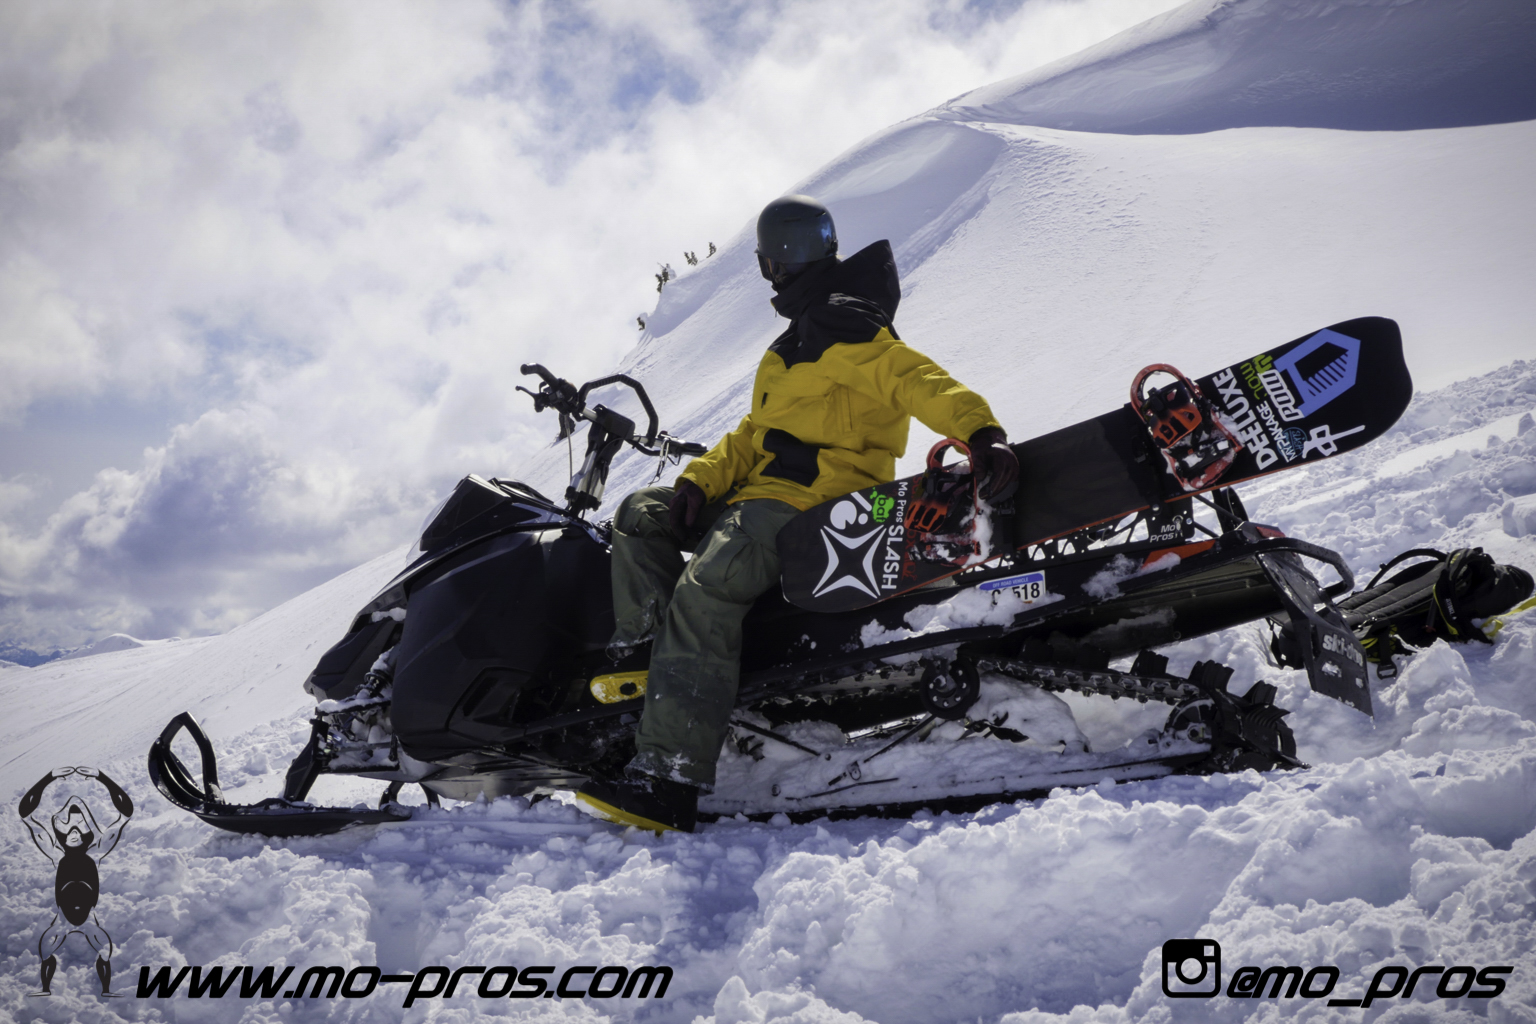 70_Gear_Gun Rack_LinQ Snowboard Ski_Snowbike_Timbersled Rack_Tsaina Rack_CFR rack_Cheetah Factory Racing_Snowboard rack_snowboard_snowmobile bag_Snowmobile_timbersled bag_gas Rack_Ski_Snowbike_Snowbo.jpg